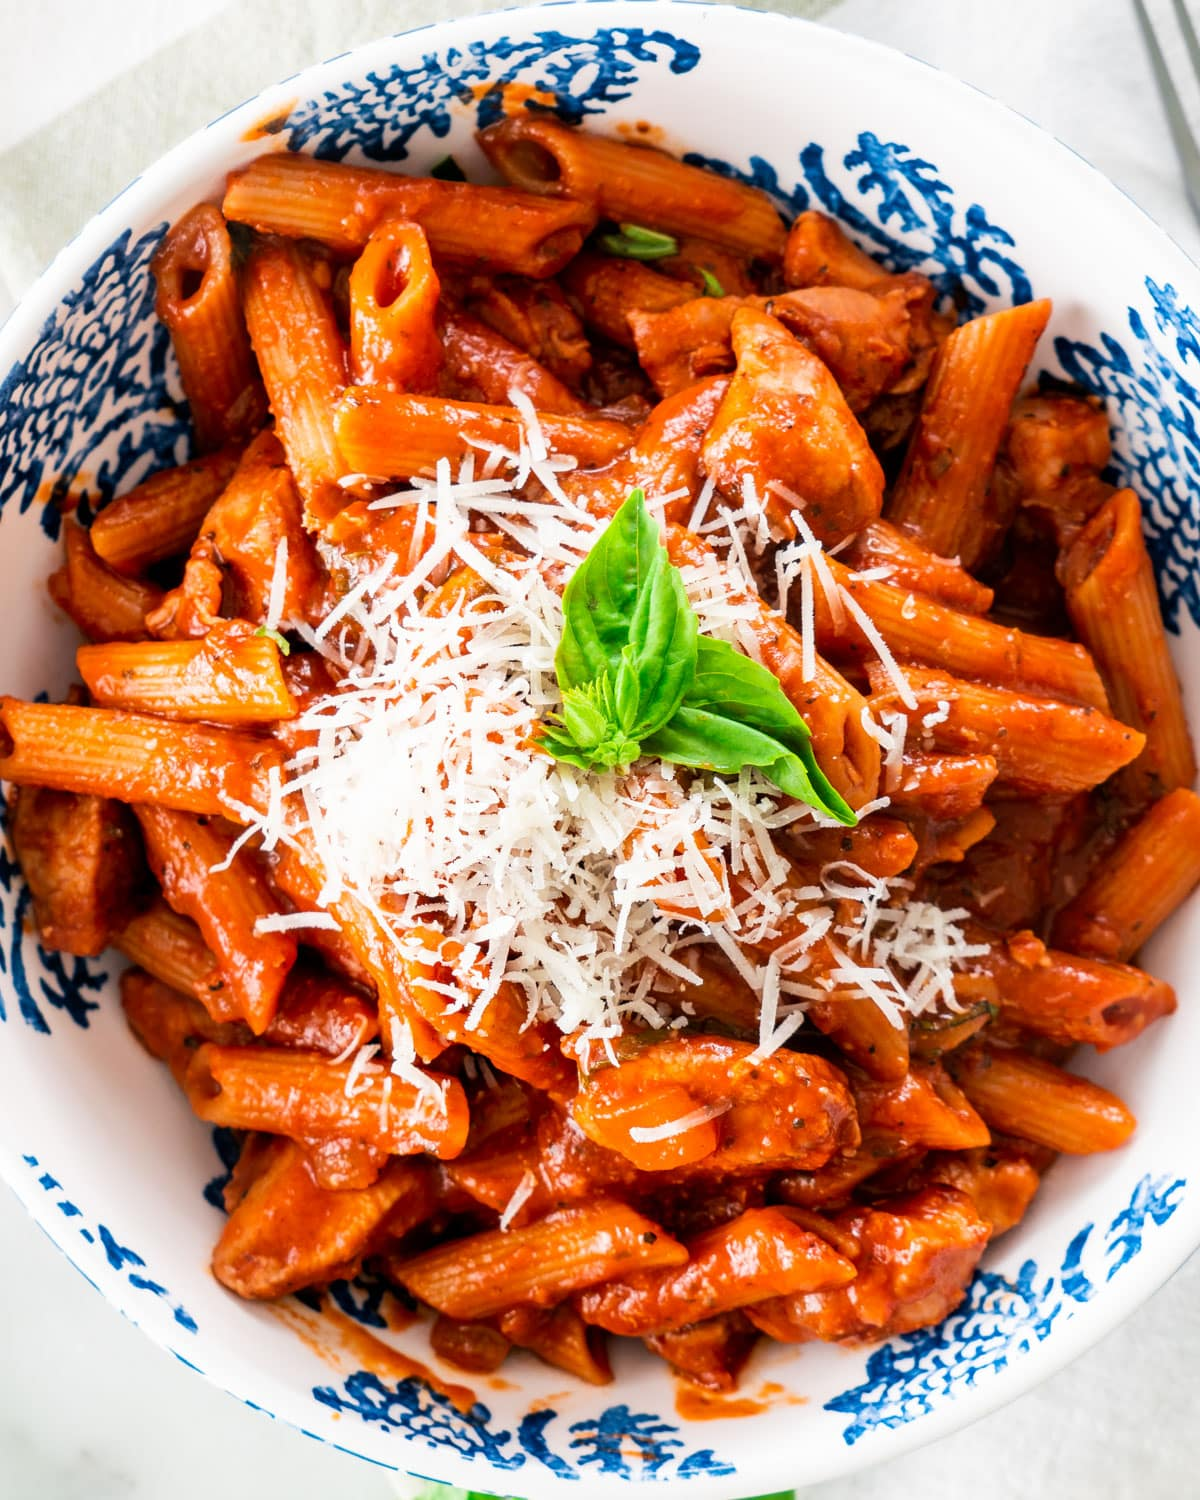 overhead shot of a portion of chicken penne arrabbiata in a white and blue plate garnished with a bit of parmesan cheese and a couple basil leaves